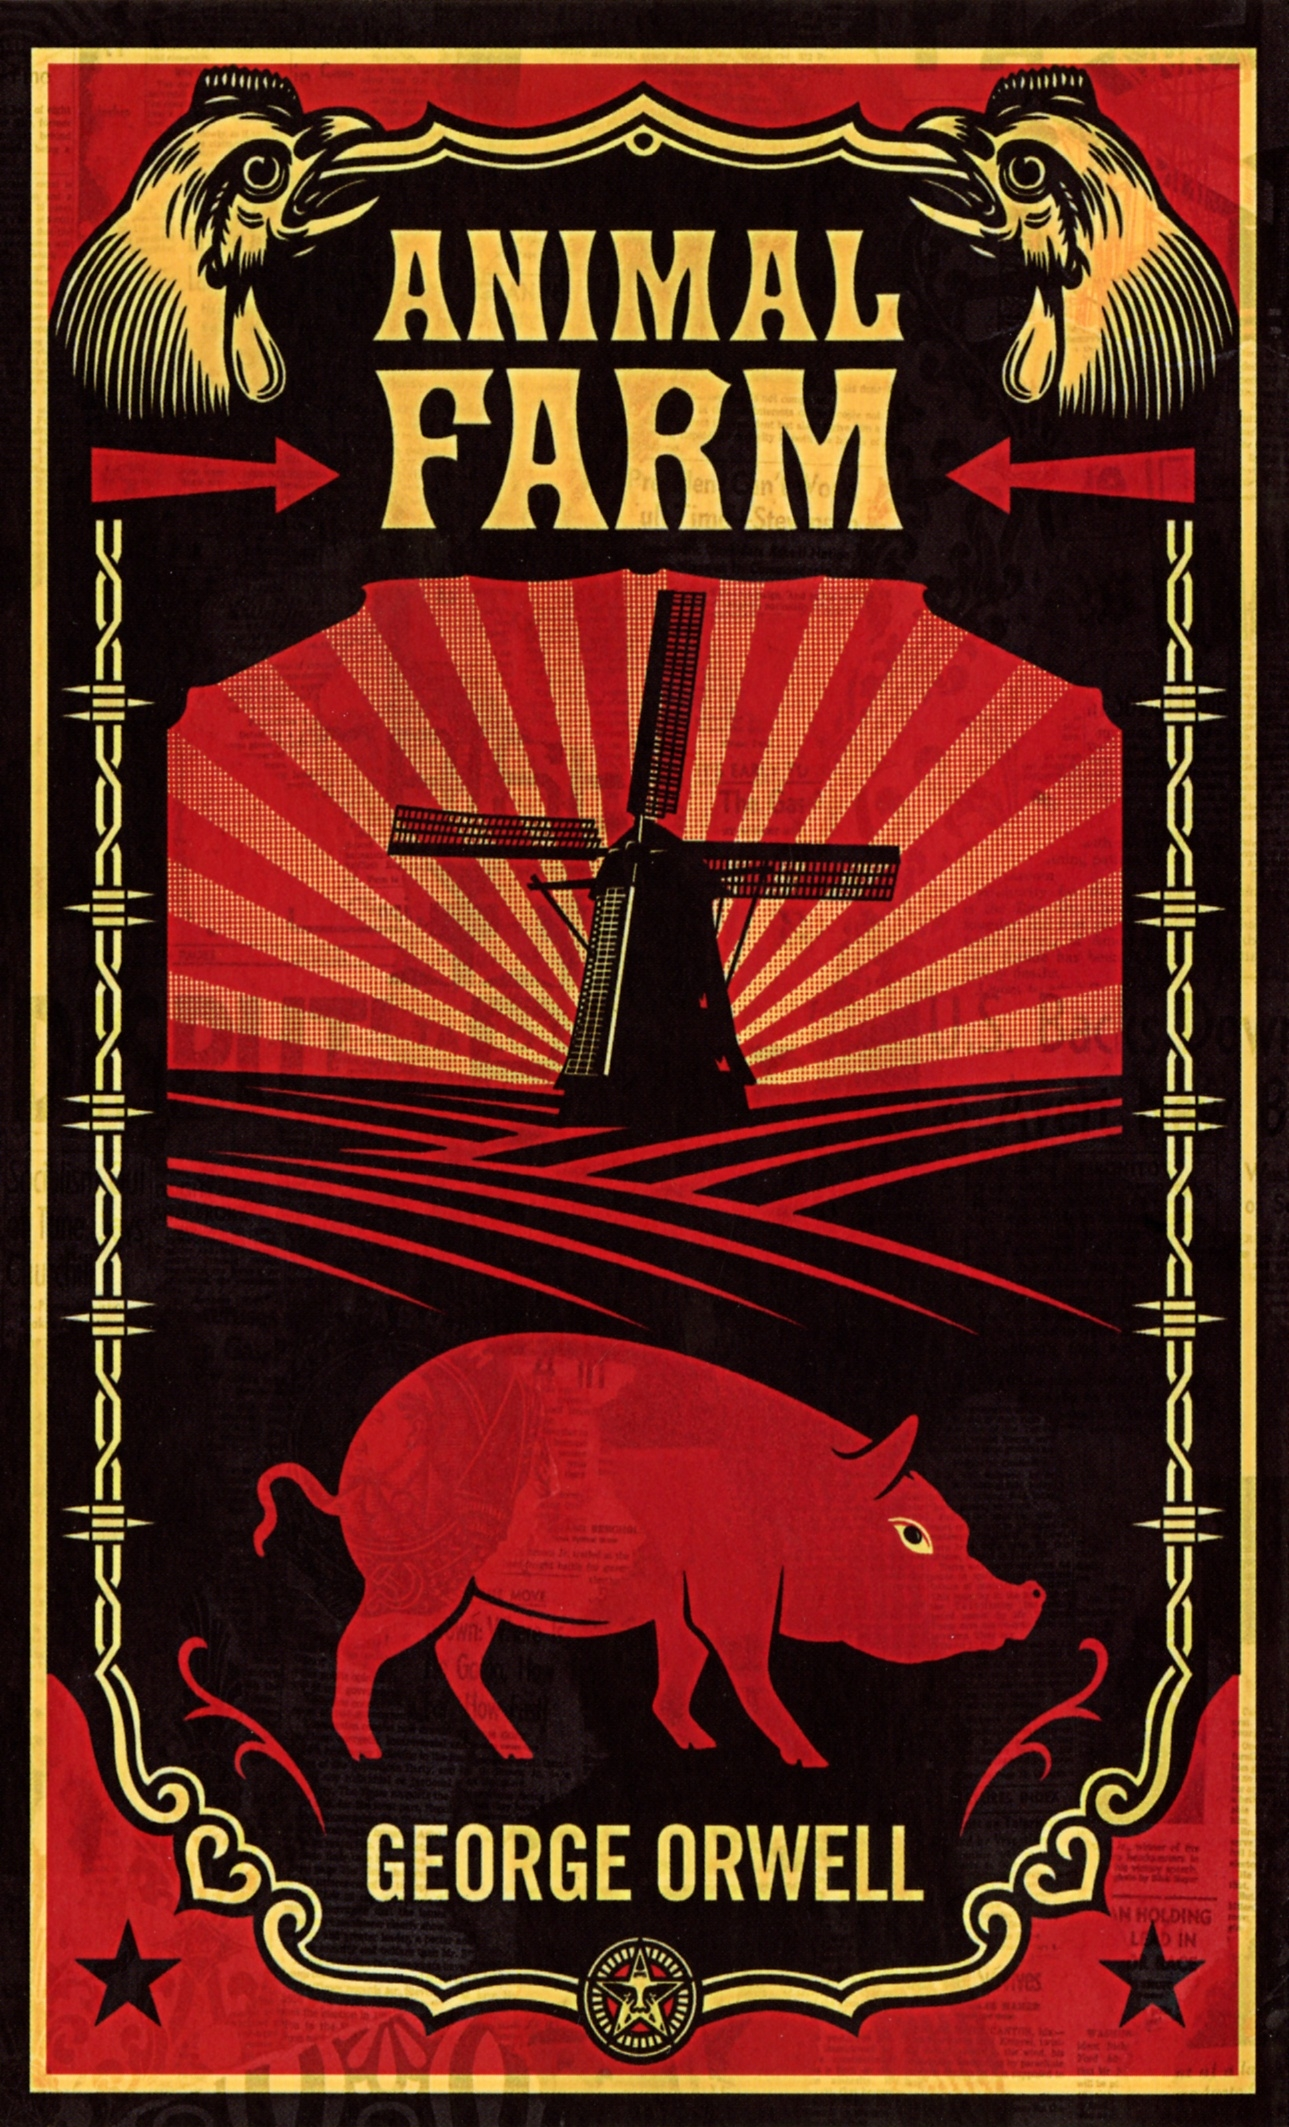 animal farm by george orwell is Learn about george orwell, british writer of such dystopian classics as 'animal farm' and 'nineteen eighty-four,' on biographycom.